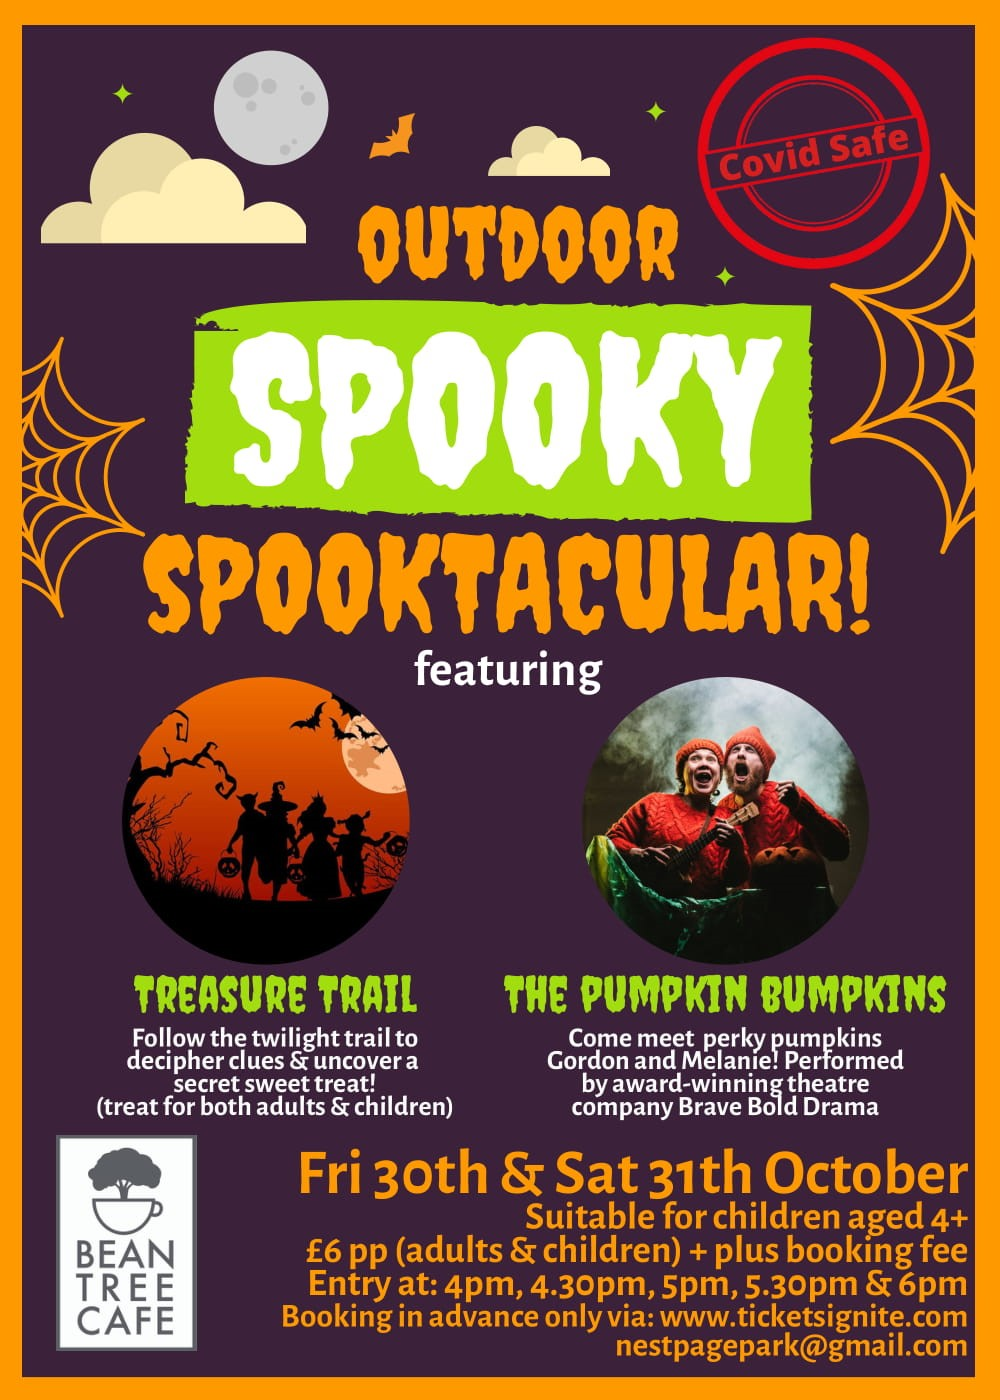 Outdoor Spooky Spooktacular with Brave Bold Drama